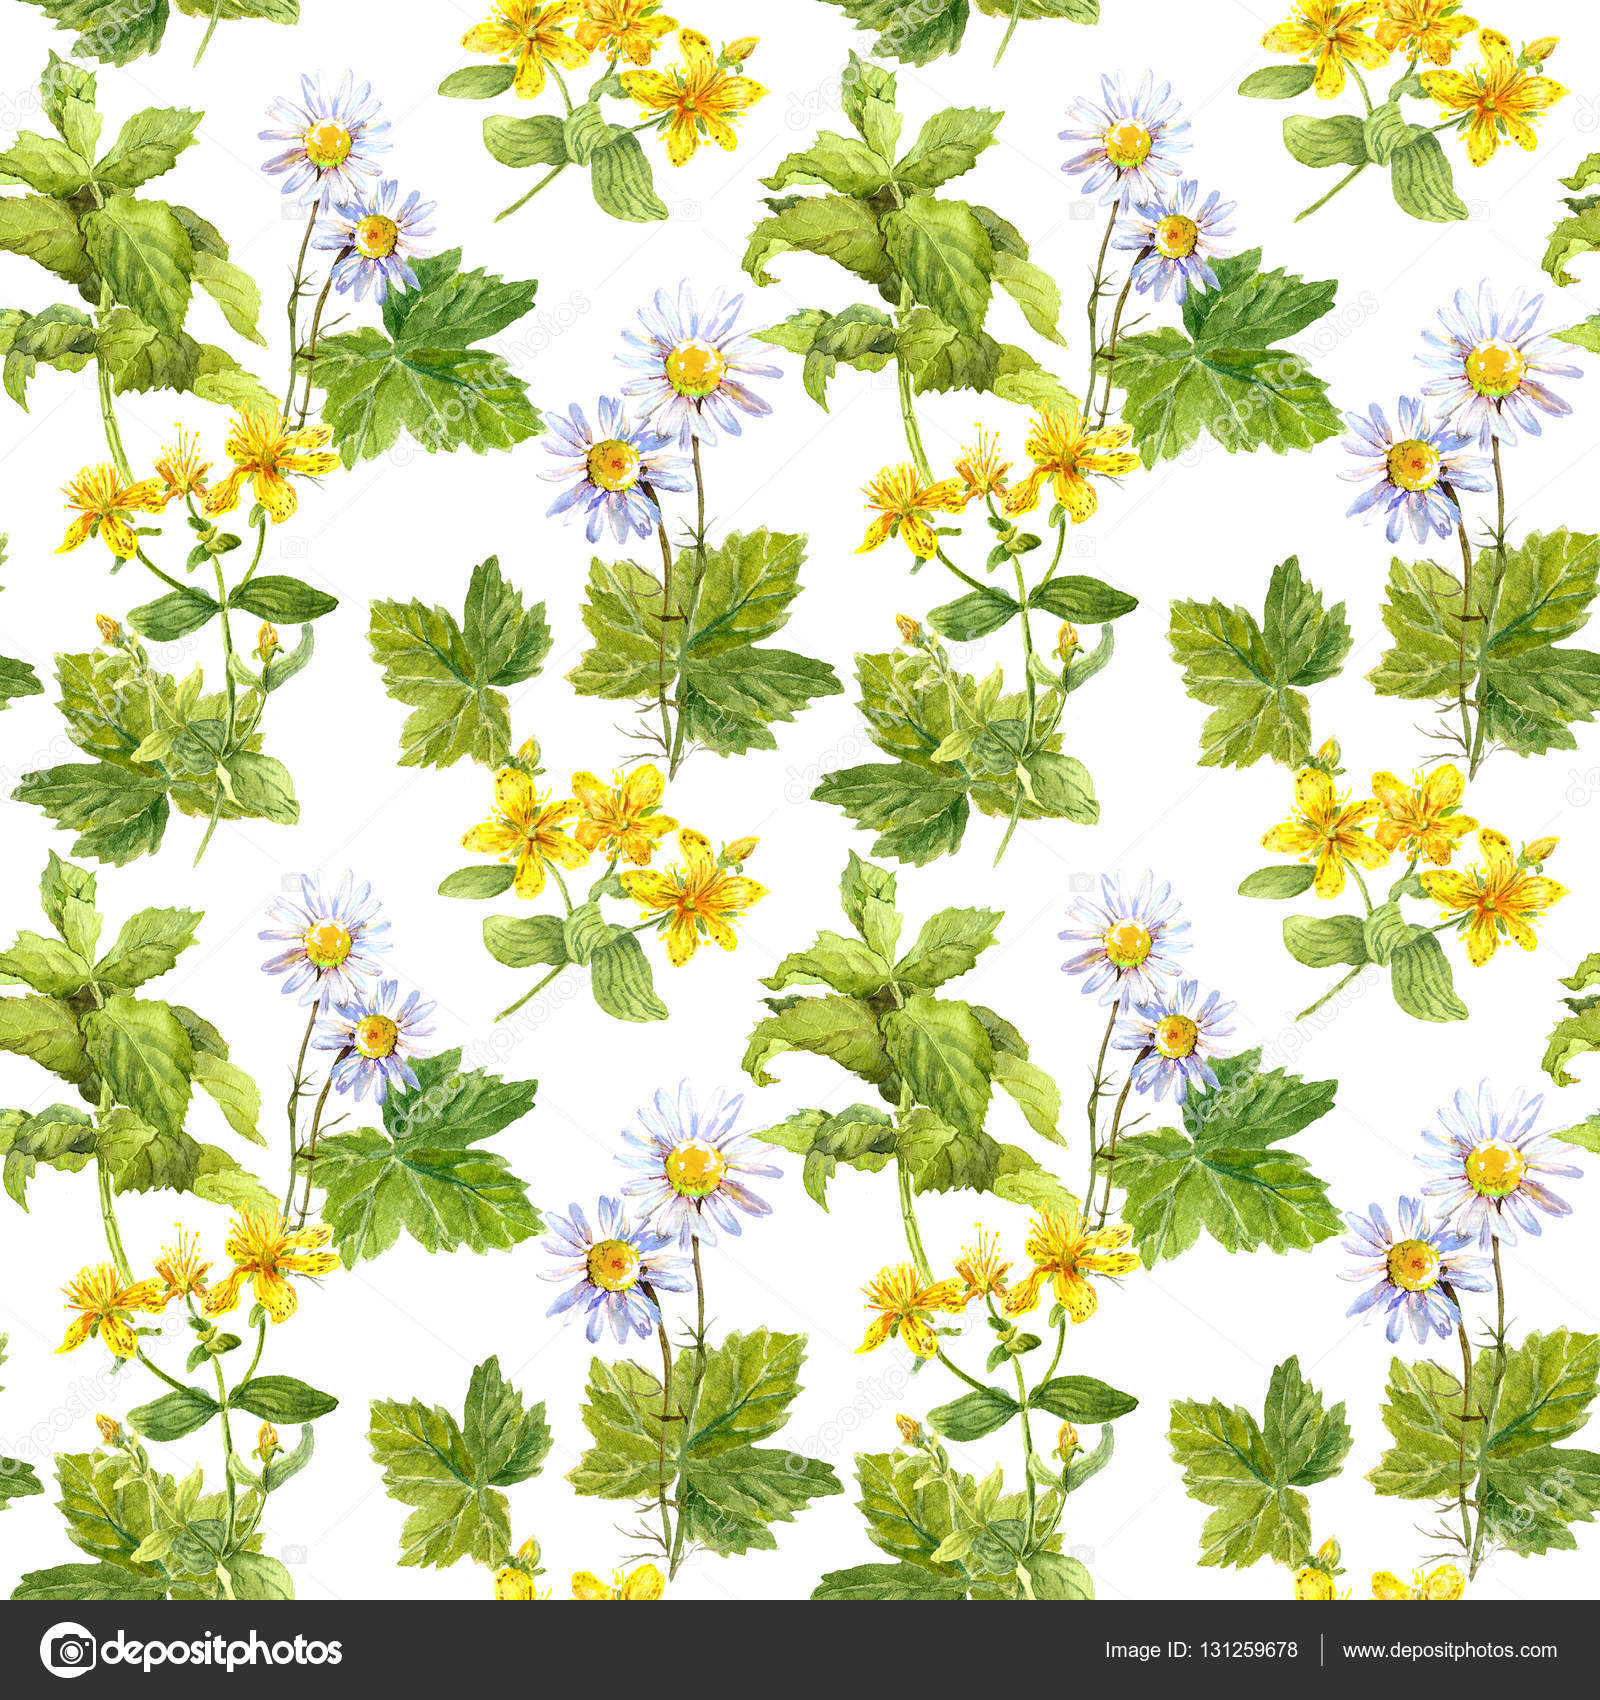 Medicinal herbs medical flowers herbal floral repeating pattern medicinal herbs medical flowers herbal floral repeating pattern watercolor stock photo mightylinksfo